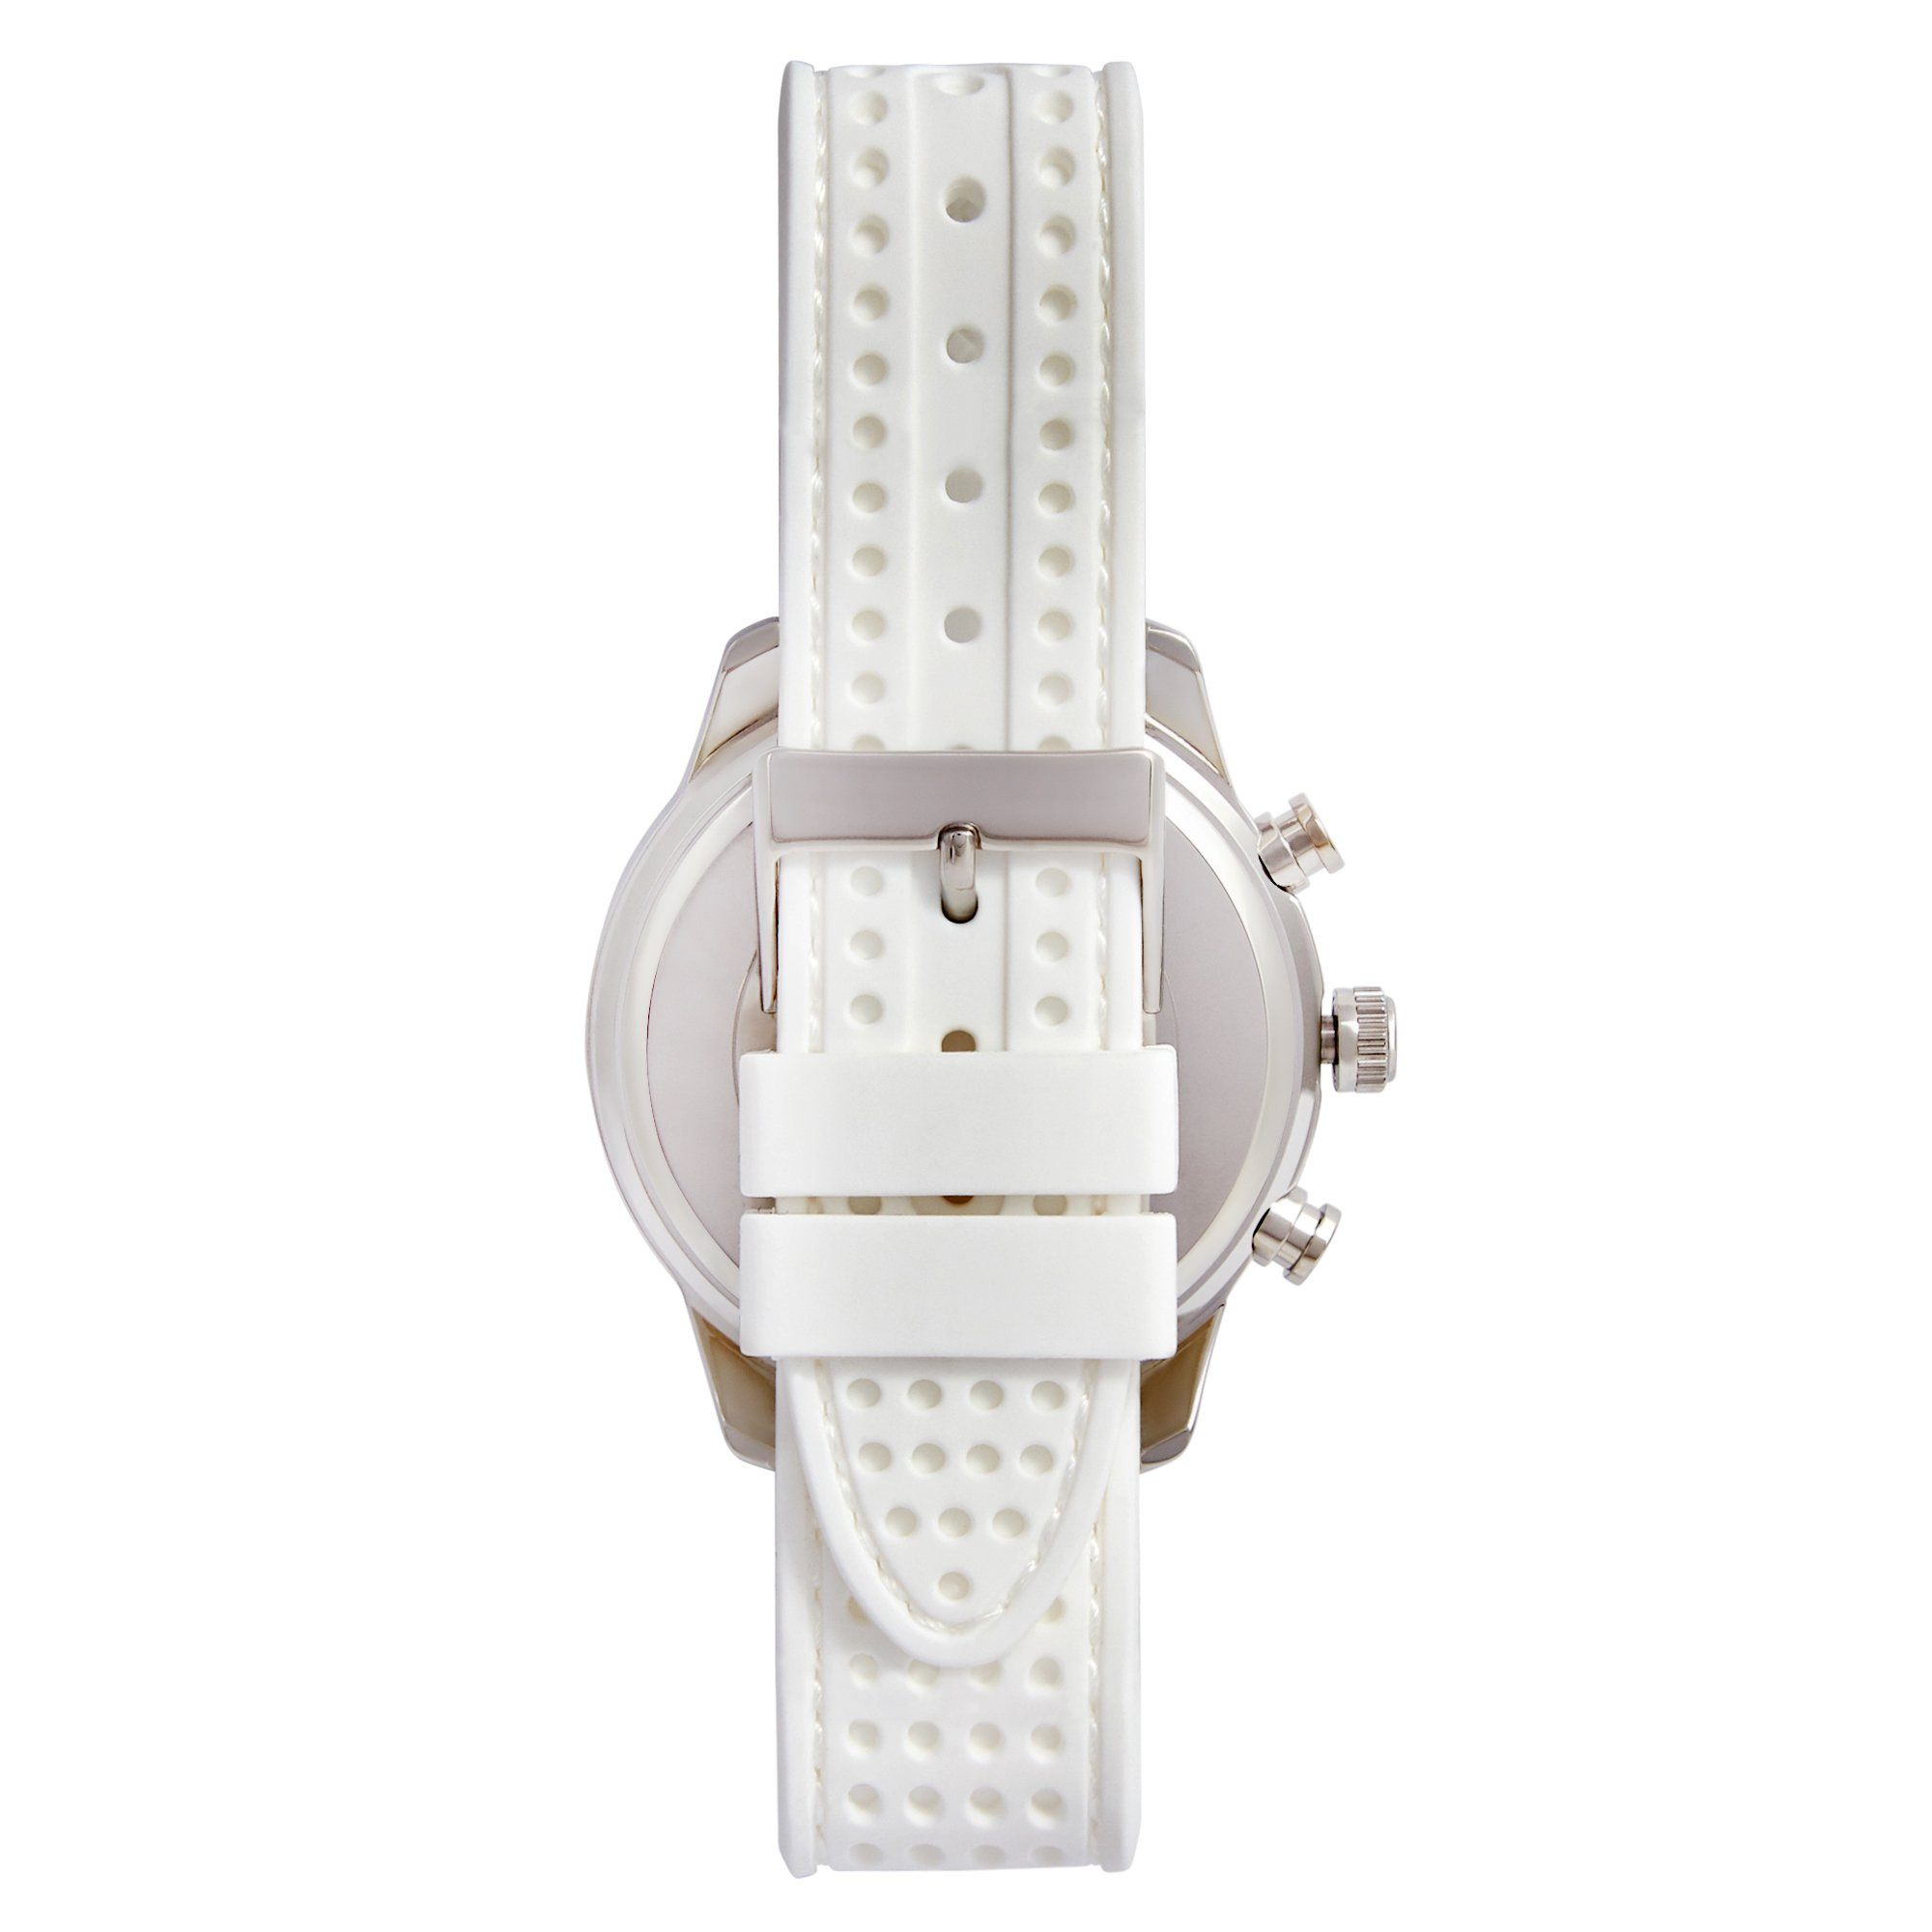 Guess Marina Slv Wht Silc Watches Isbister & Co Wholesale